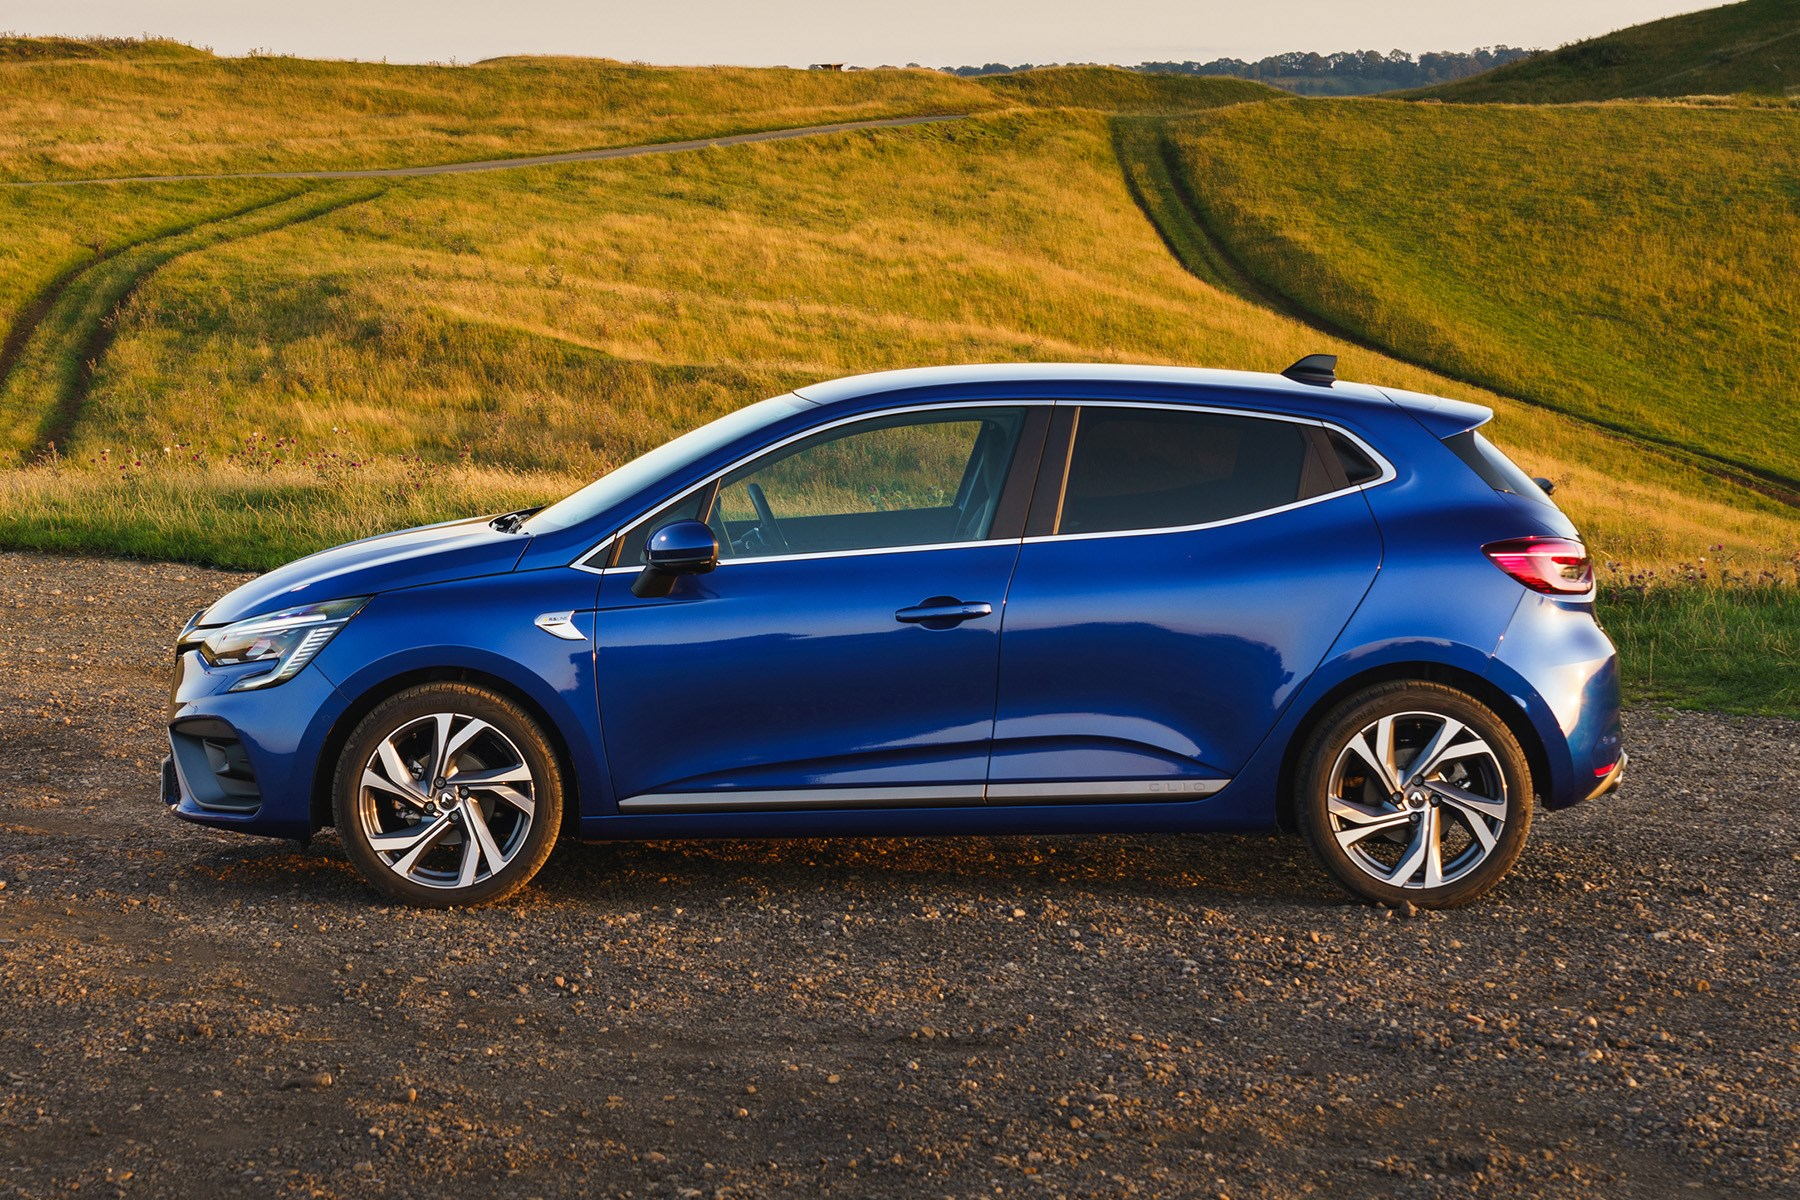 Renault Clio 2019 R.S. Line side